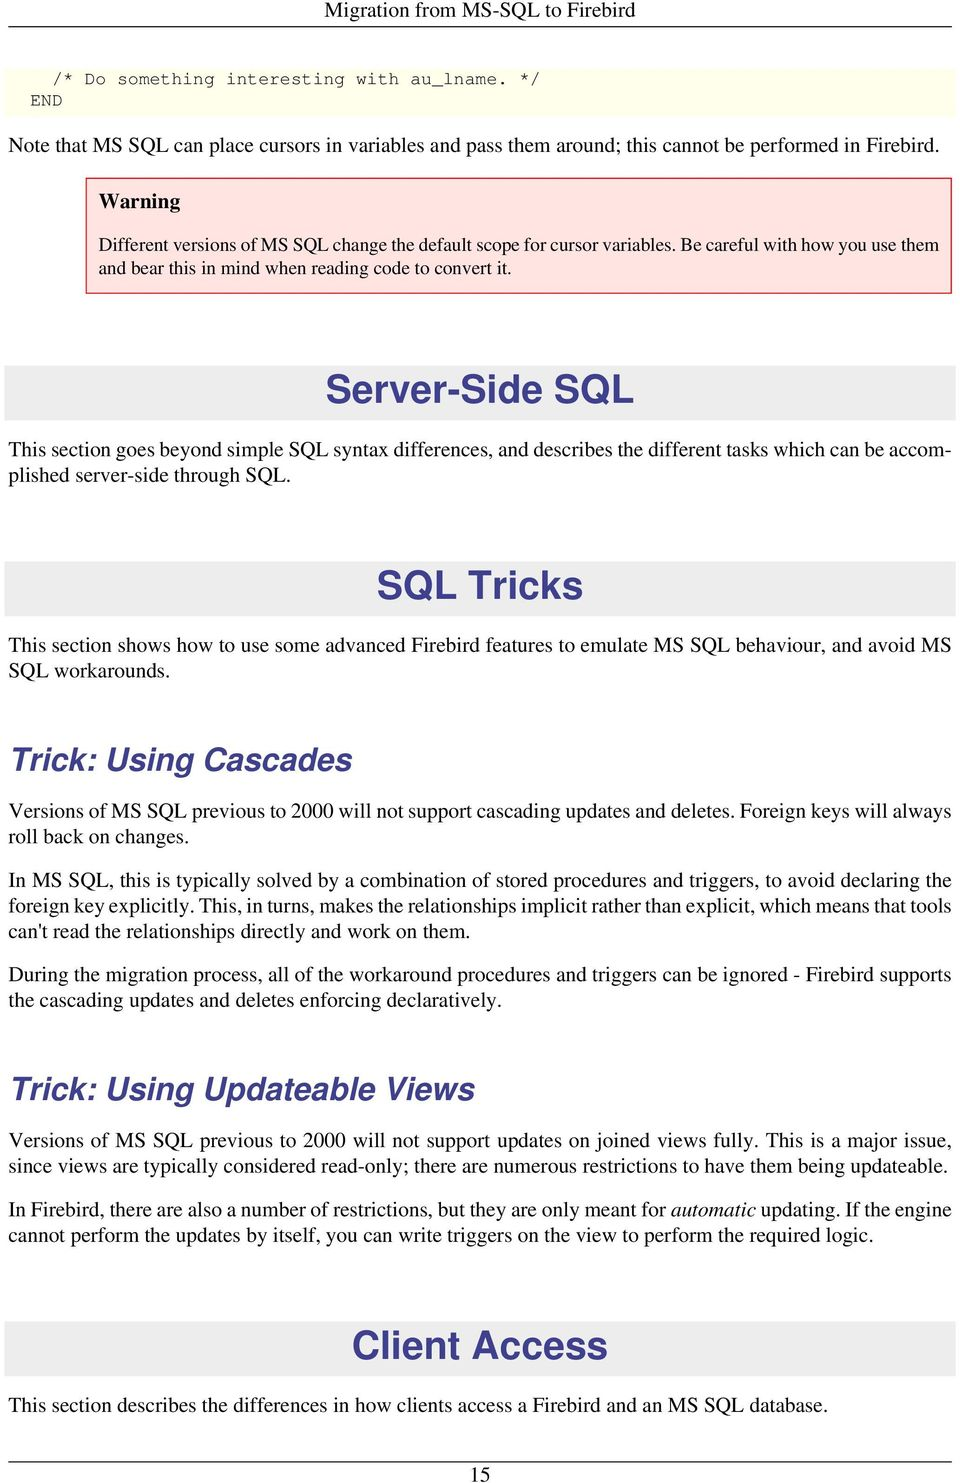 Server-Side SQL This section goes beyond simple SQL syntax differences, and describes the different tasks which can be accomplished server-side through SQL.